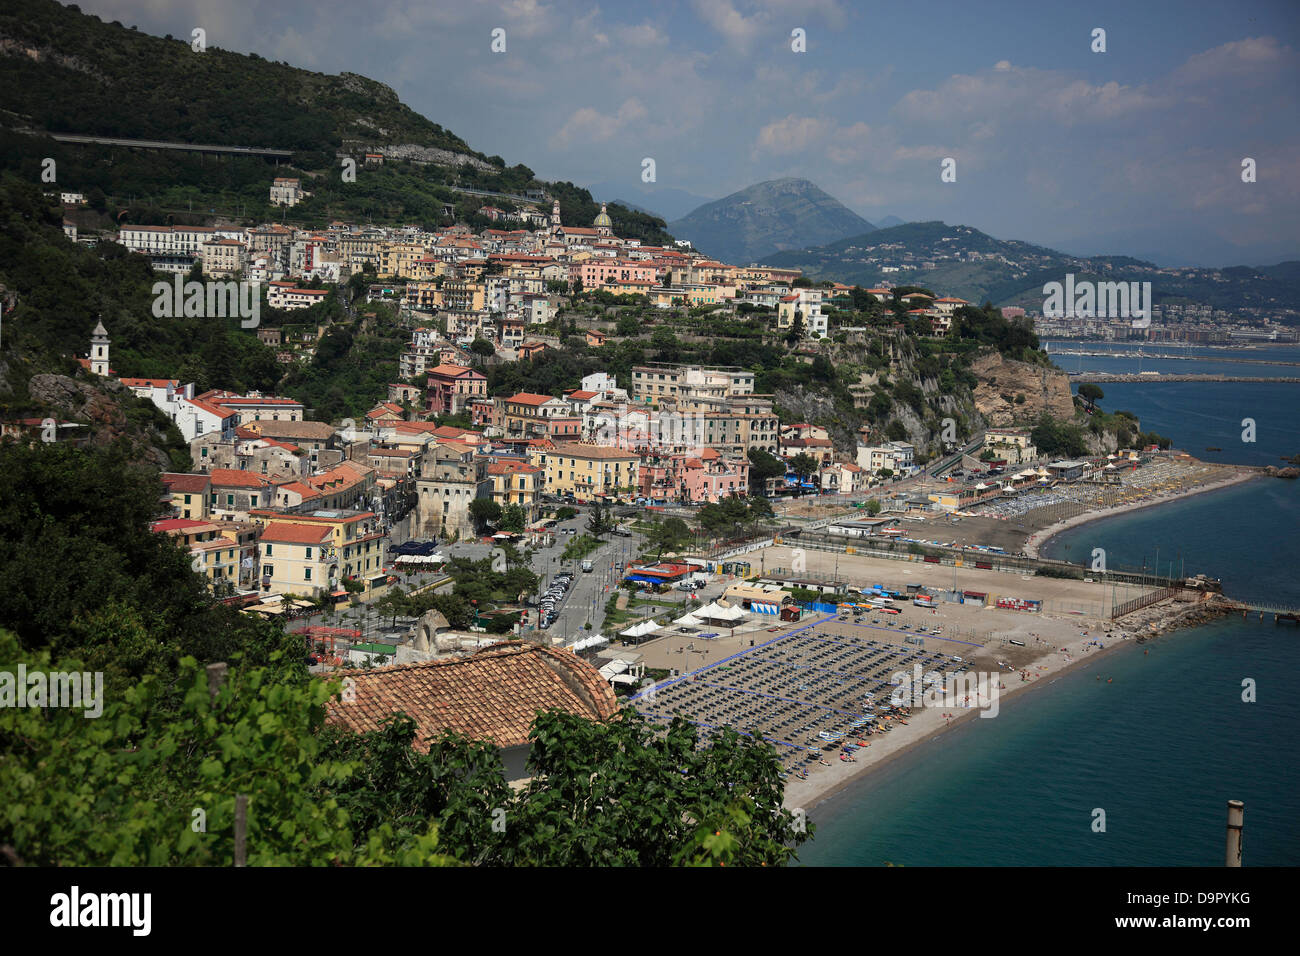 Vietri sul Mare, Campania, Italy, on the Amalfi Coast, Campania, Italy - Stock Image